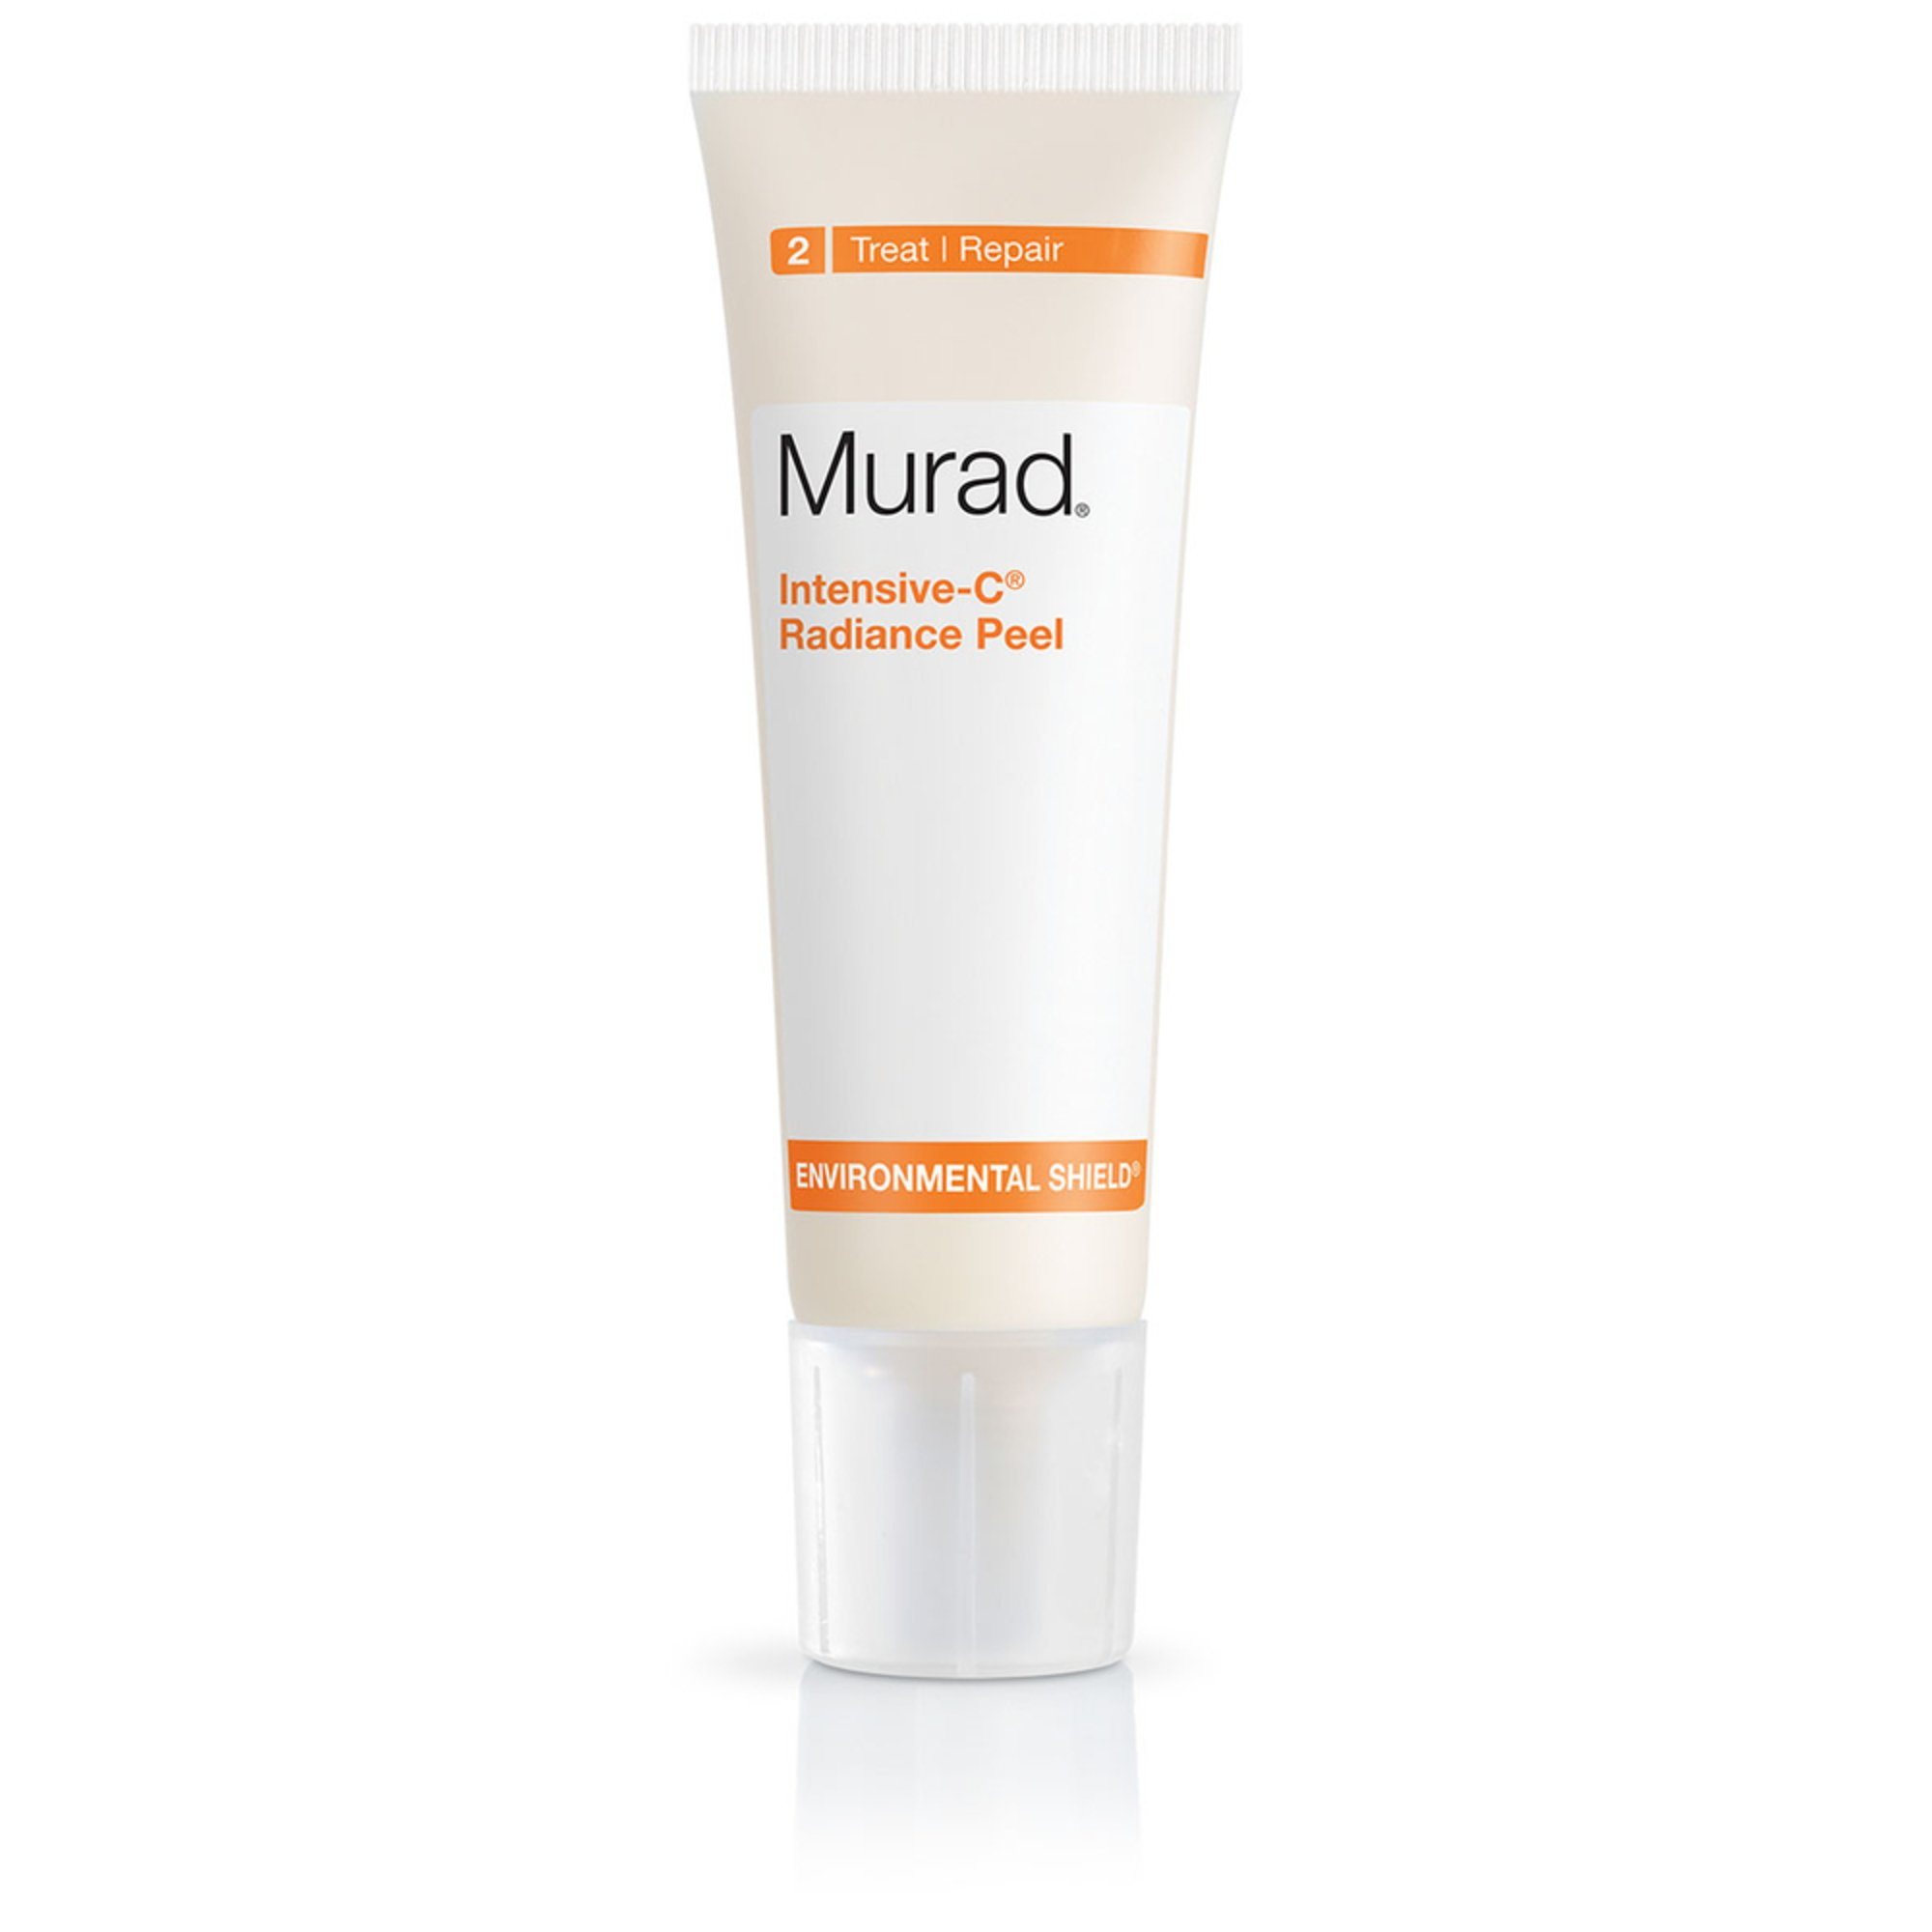 Murad Environmental Shield Intensive-C Radiance Peel